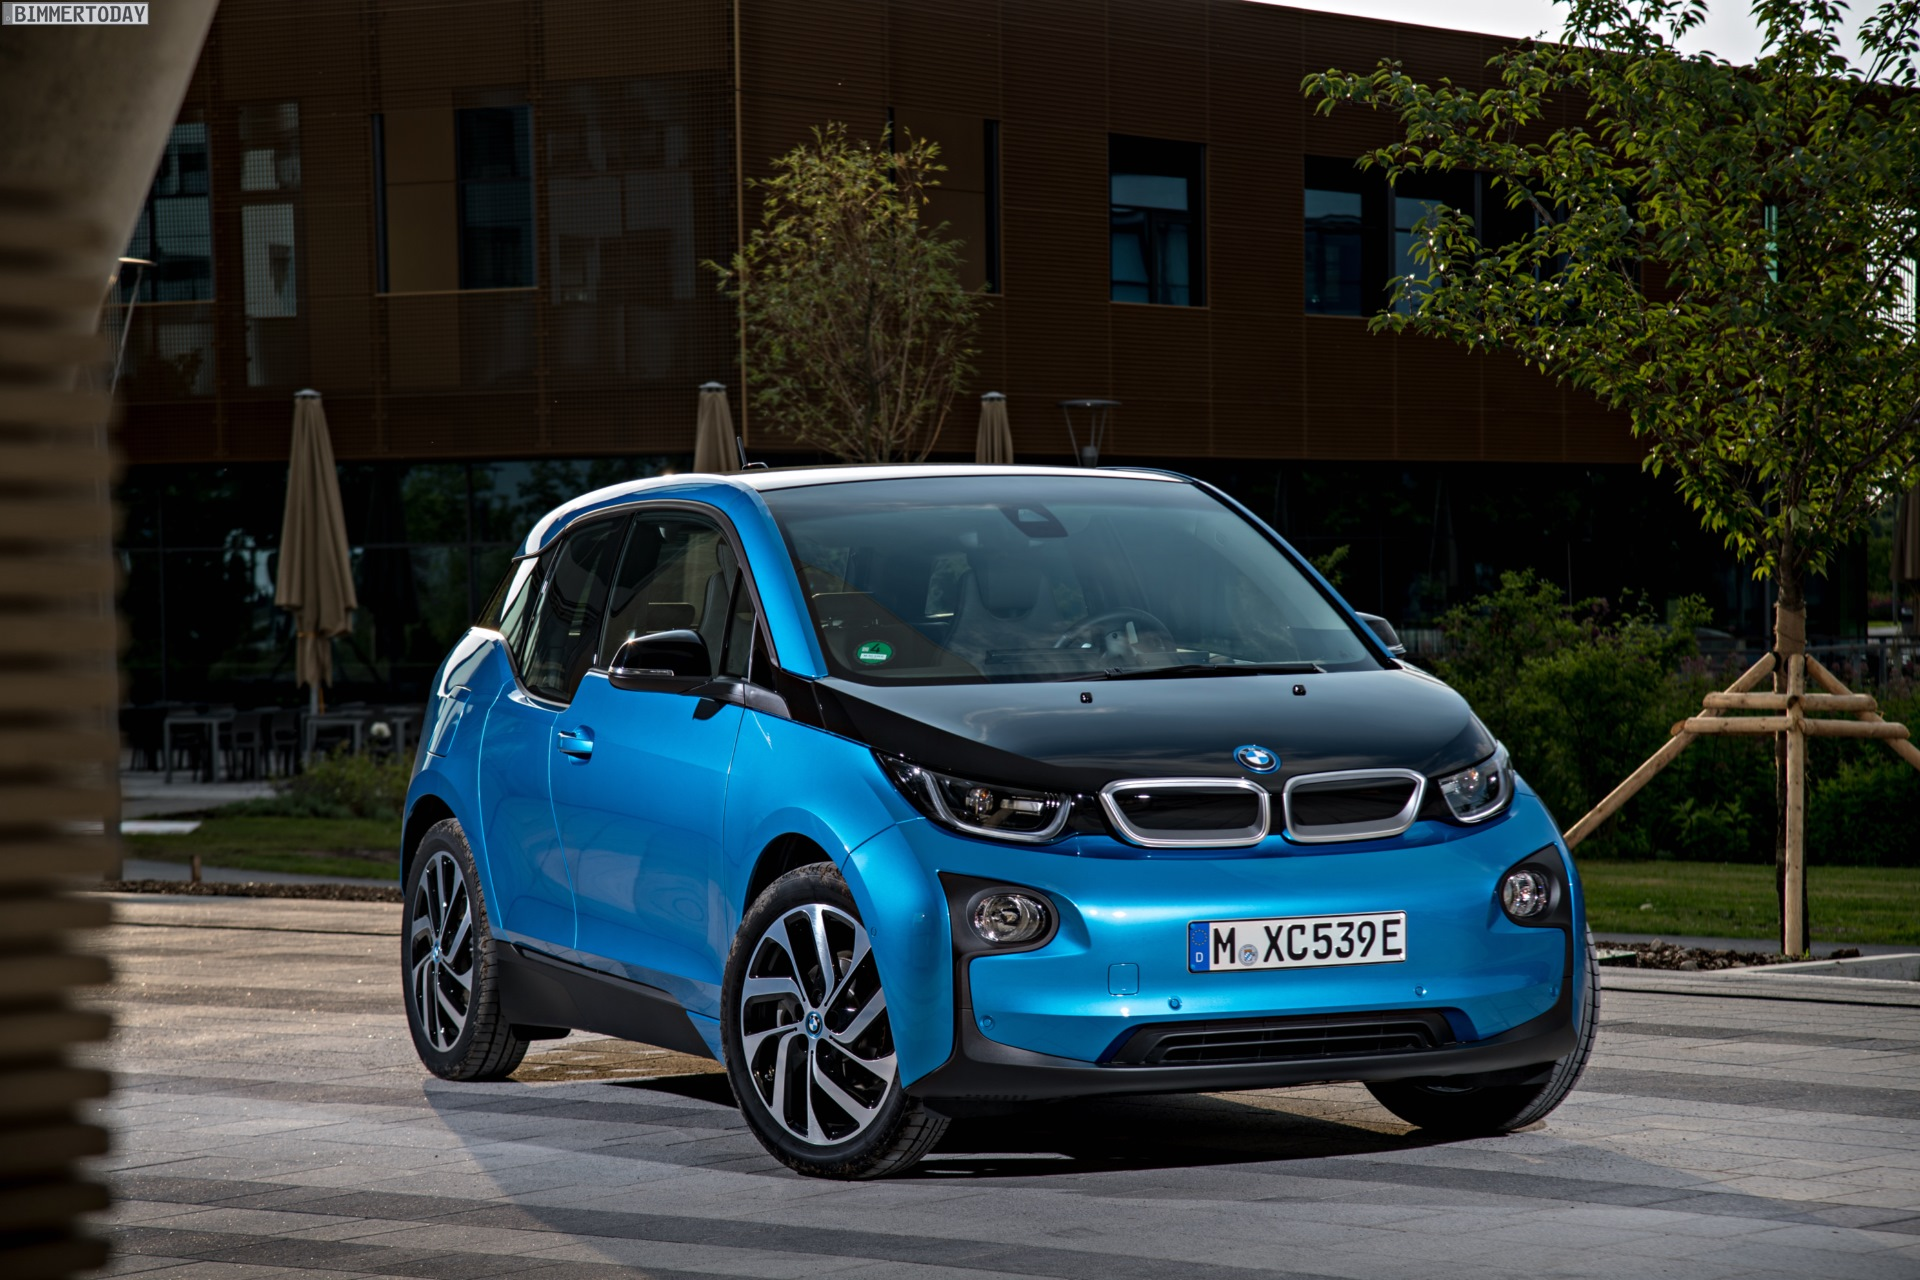 bmw i3 94ah 2016 interview mit projektleiter andreas feist. Black Bedroom Furniture Sets. Home Design Ideas